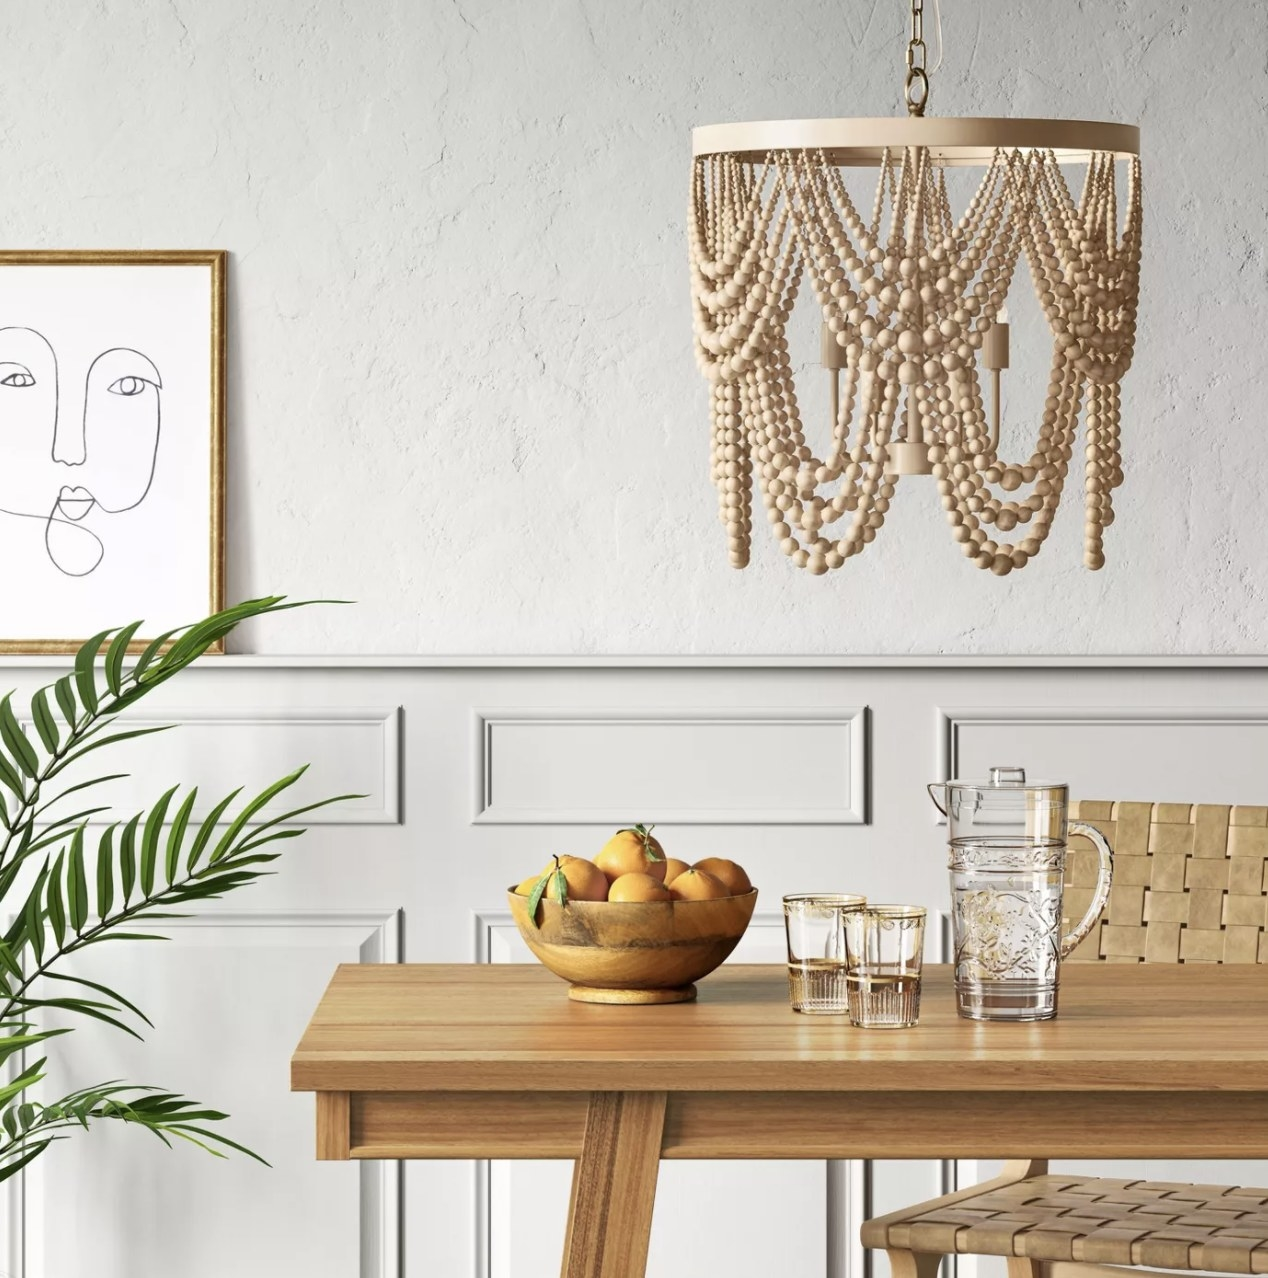 The large tan wooden bead chandelier is hung above the table